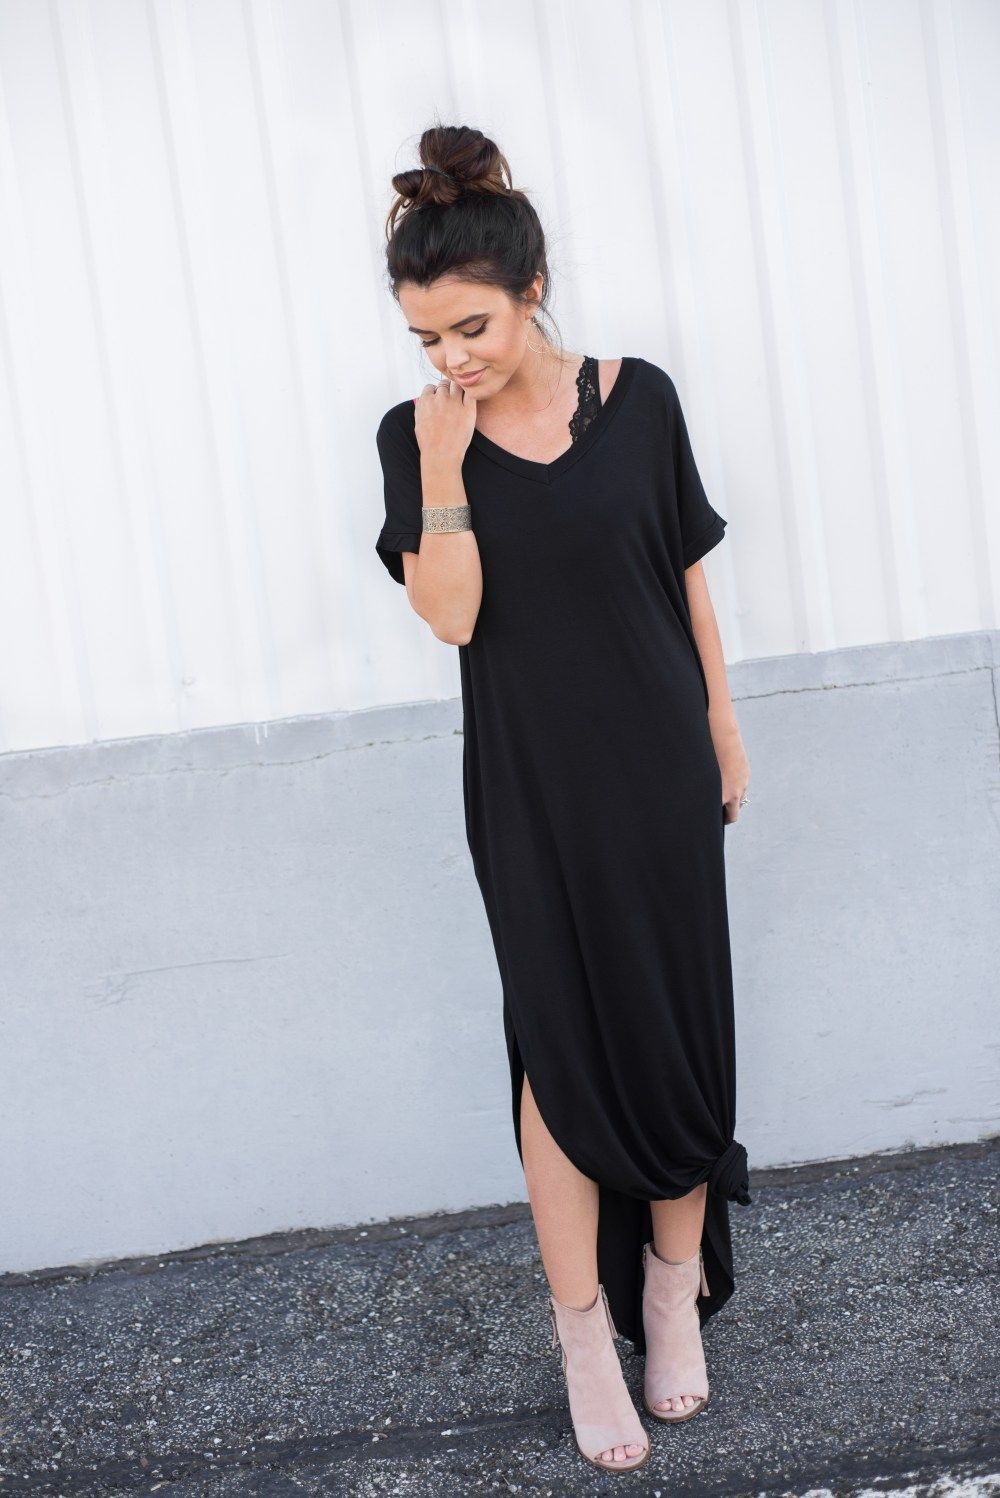 b3245ddfcb8 Casual Knotted Maxi Dress - Current Bliss